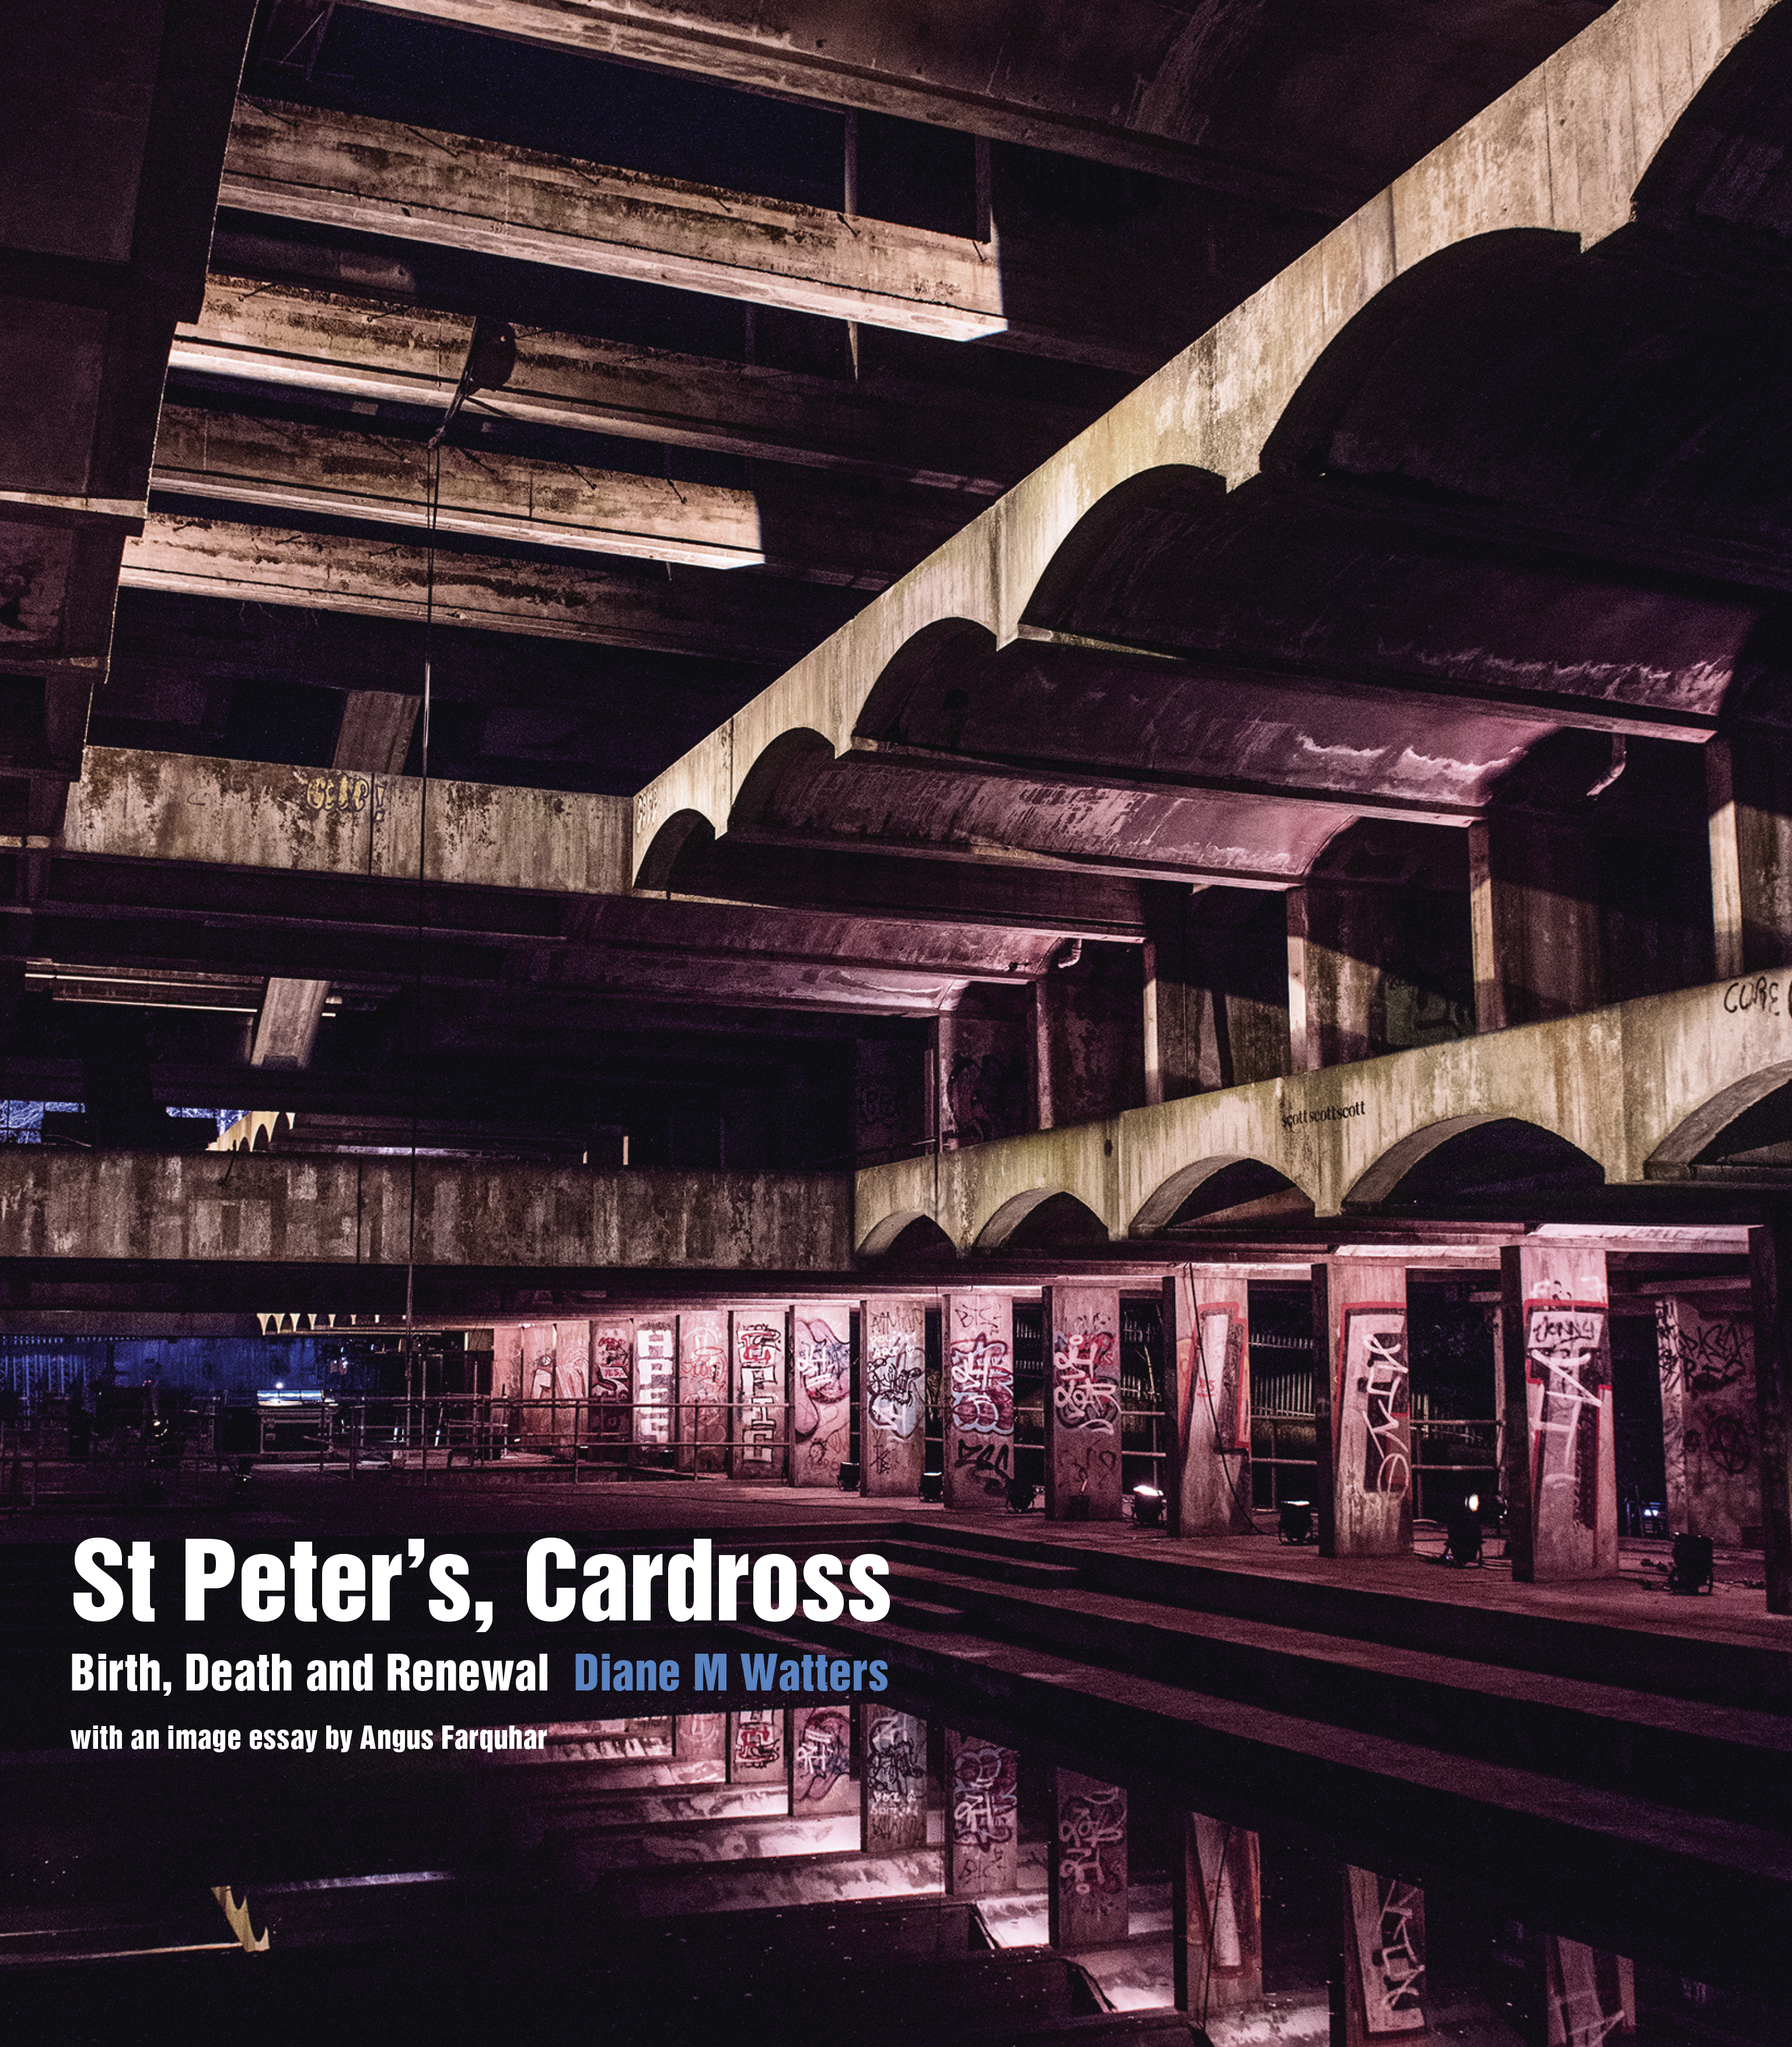 The Story of Cardross Seminary